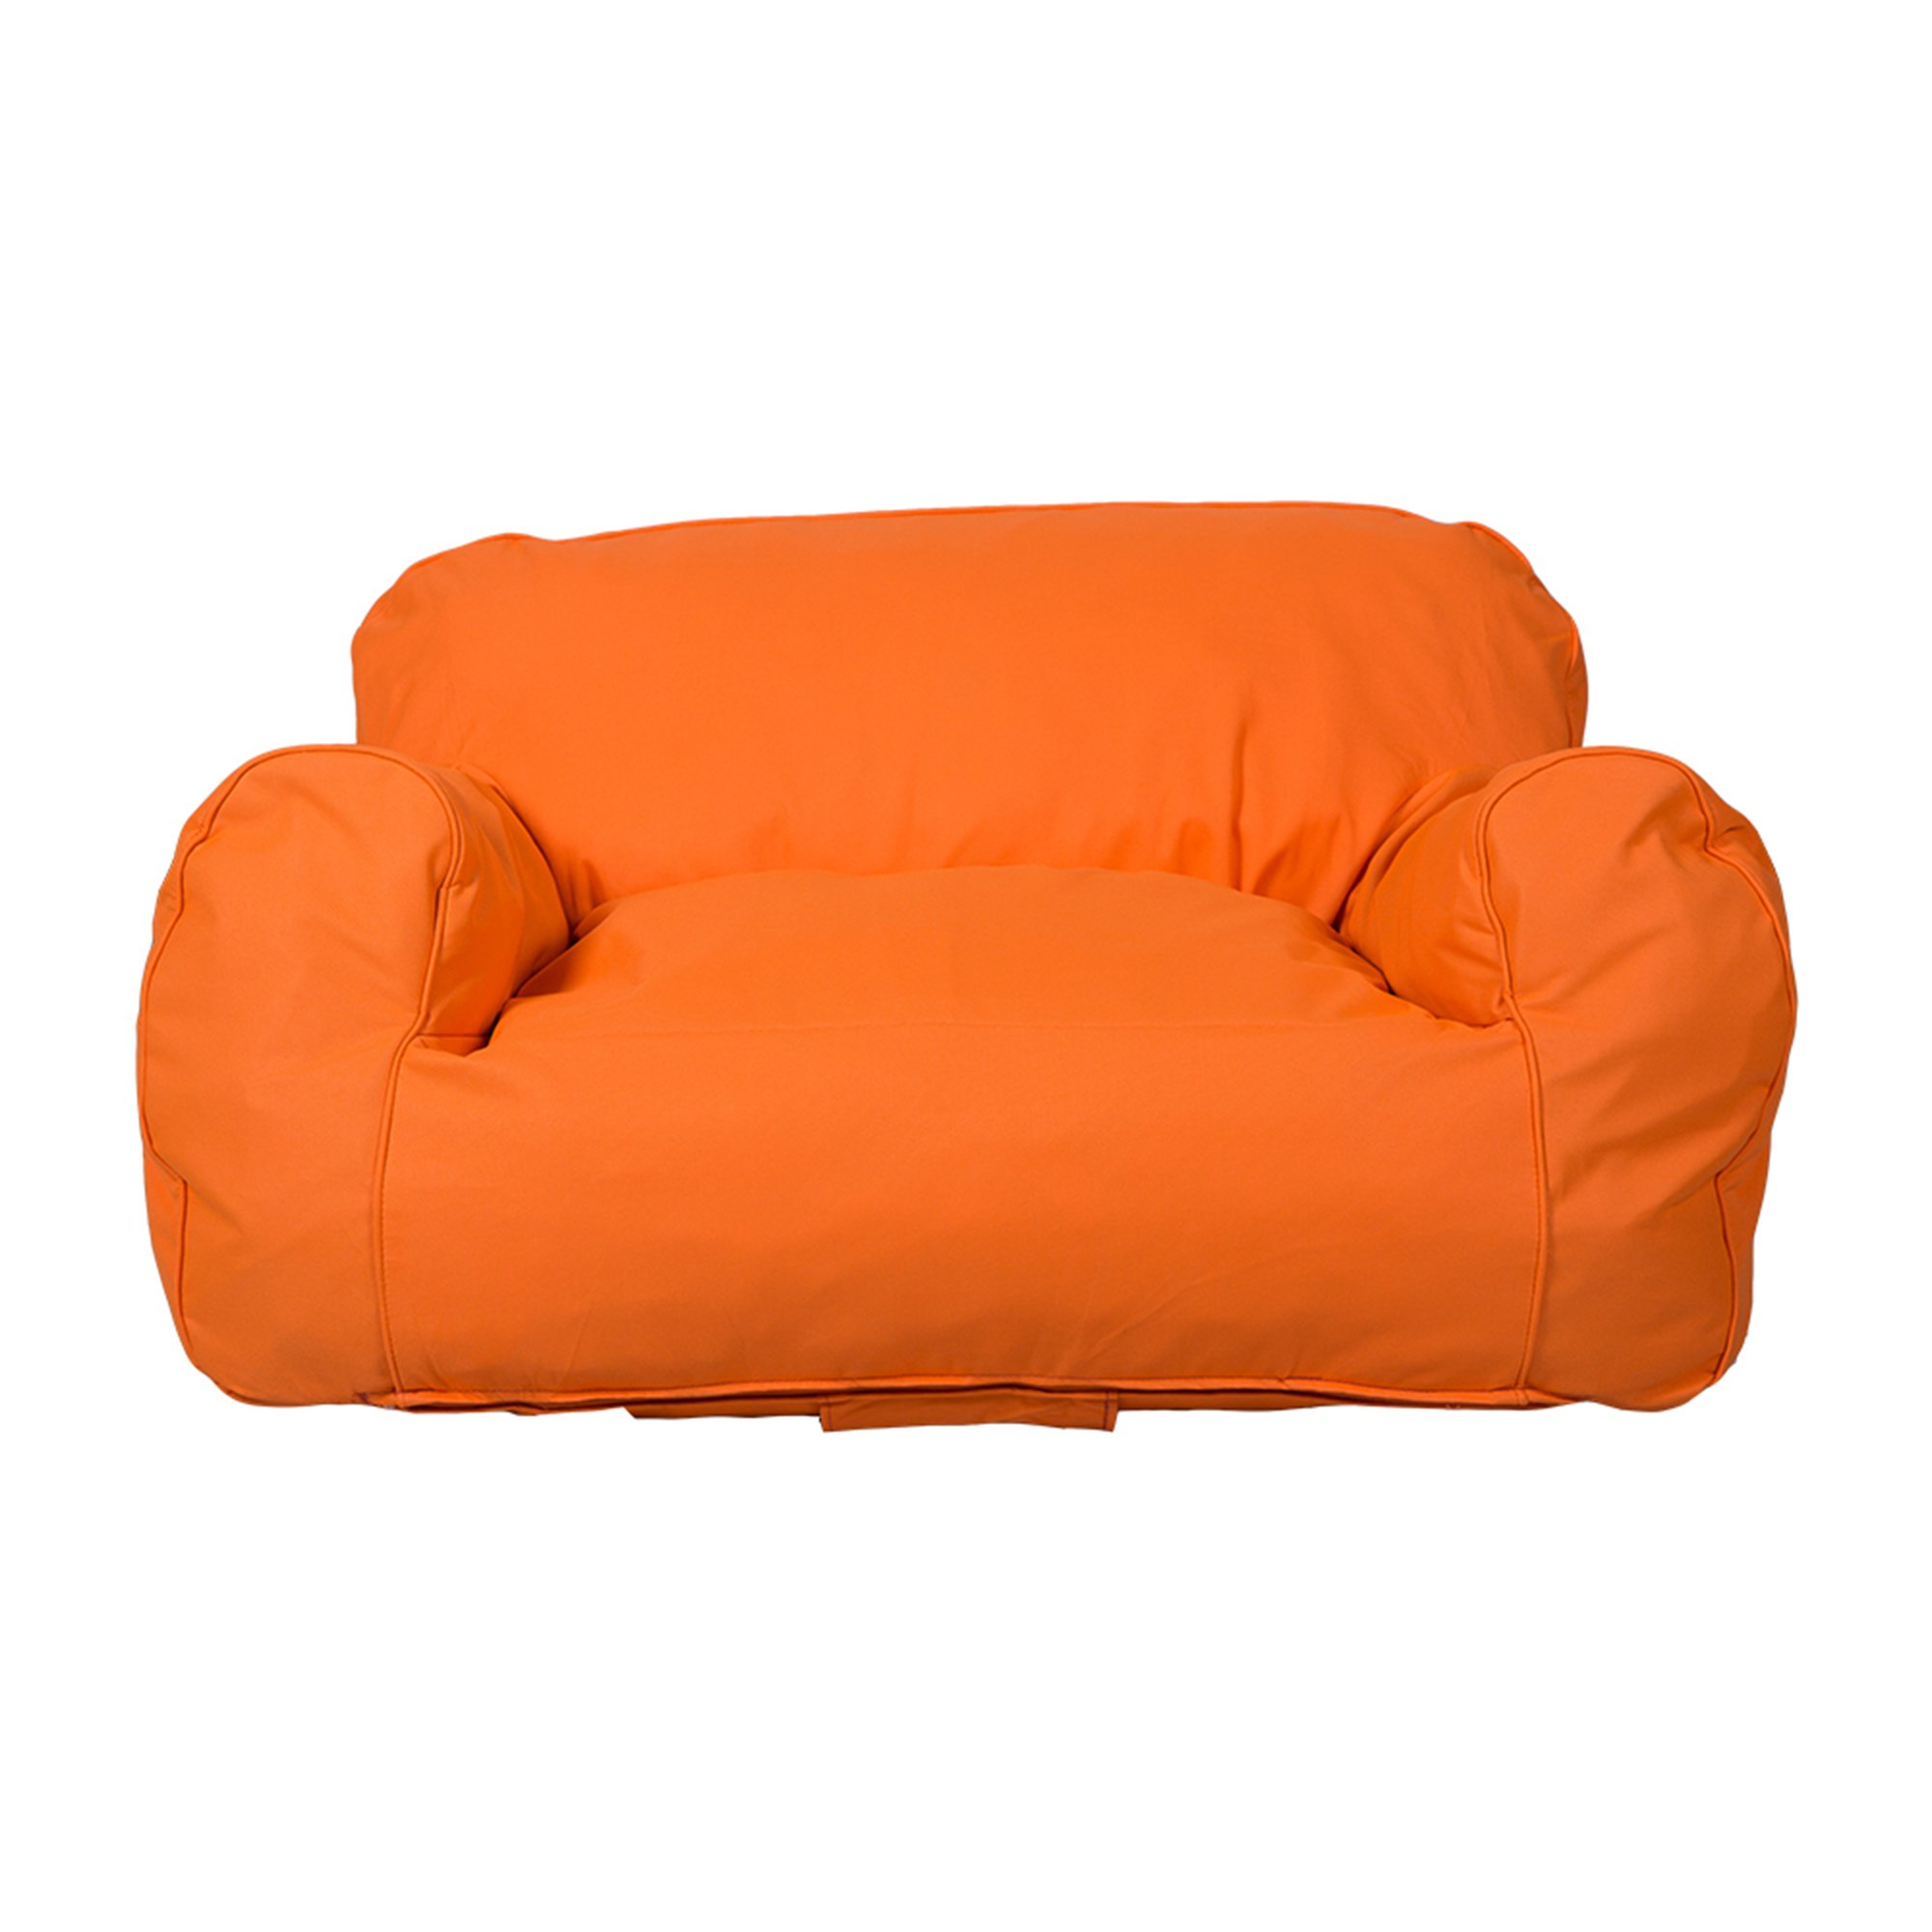 Amazing KARMAS PRODUCT Children Sofa Self Rebound Foam Couch For Kids Double Kid TV Lounge  Furniture Junior Chair Loveseat,Red   Walmart.com